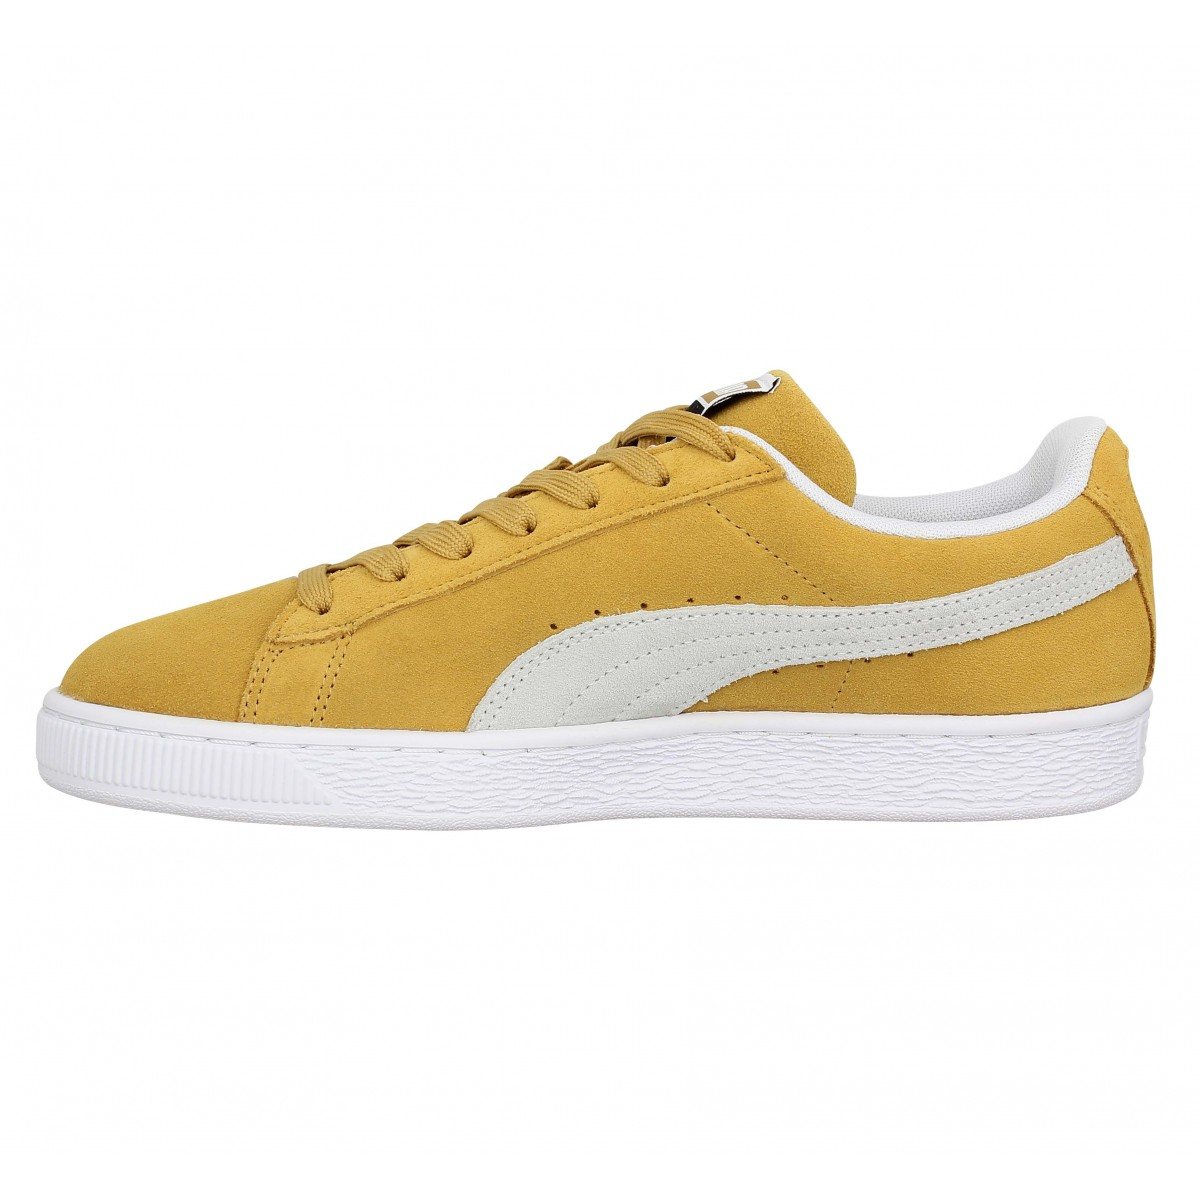 puma homme moutarde